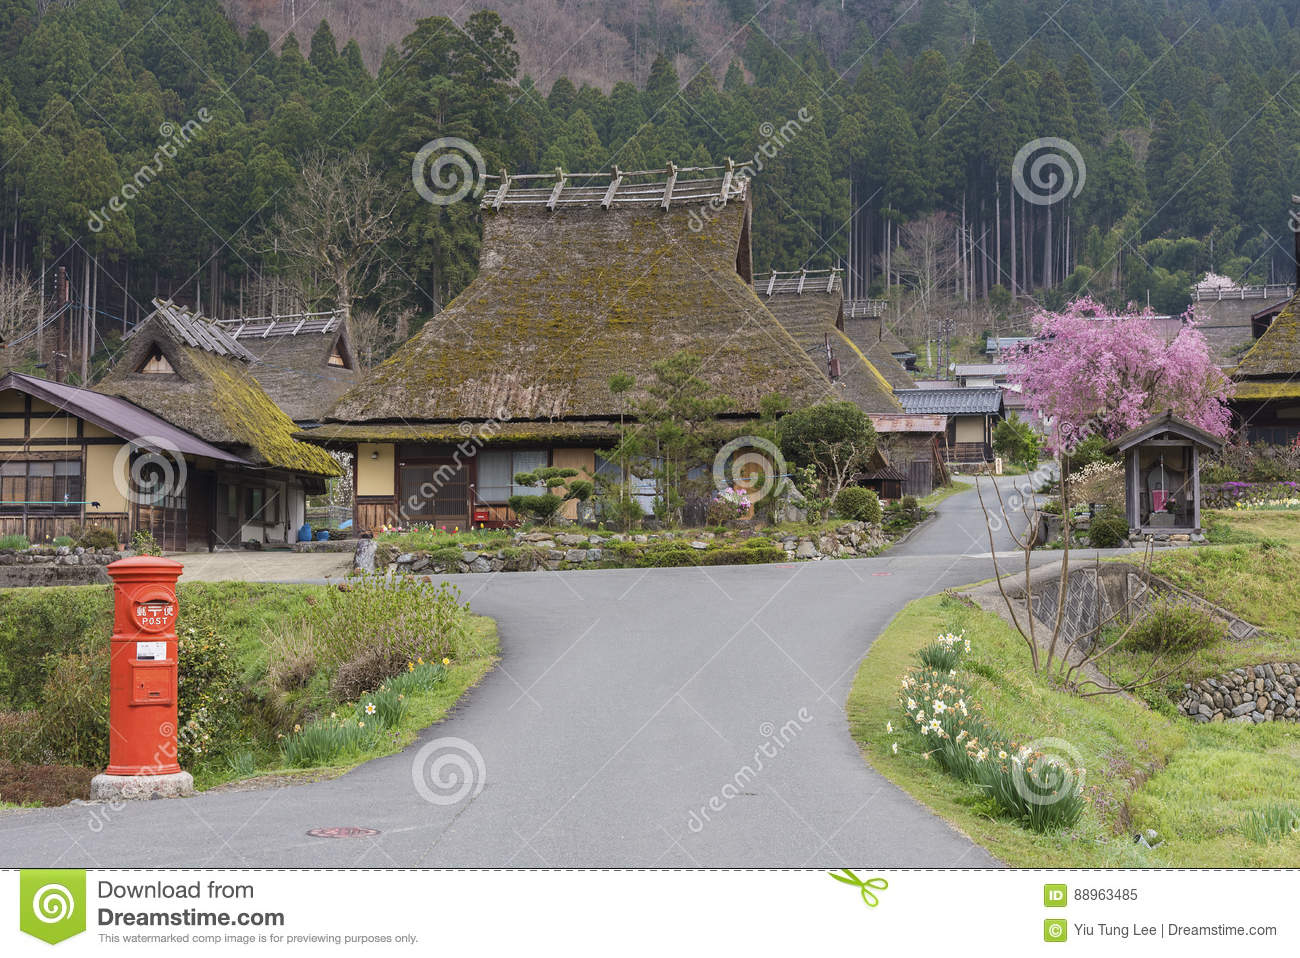 Historical village Miyama in Kyoto, Japan